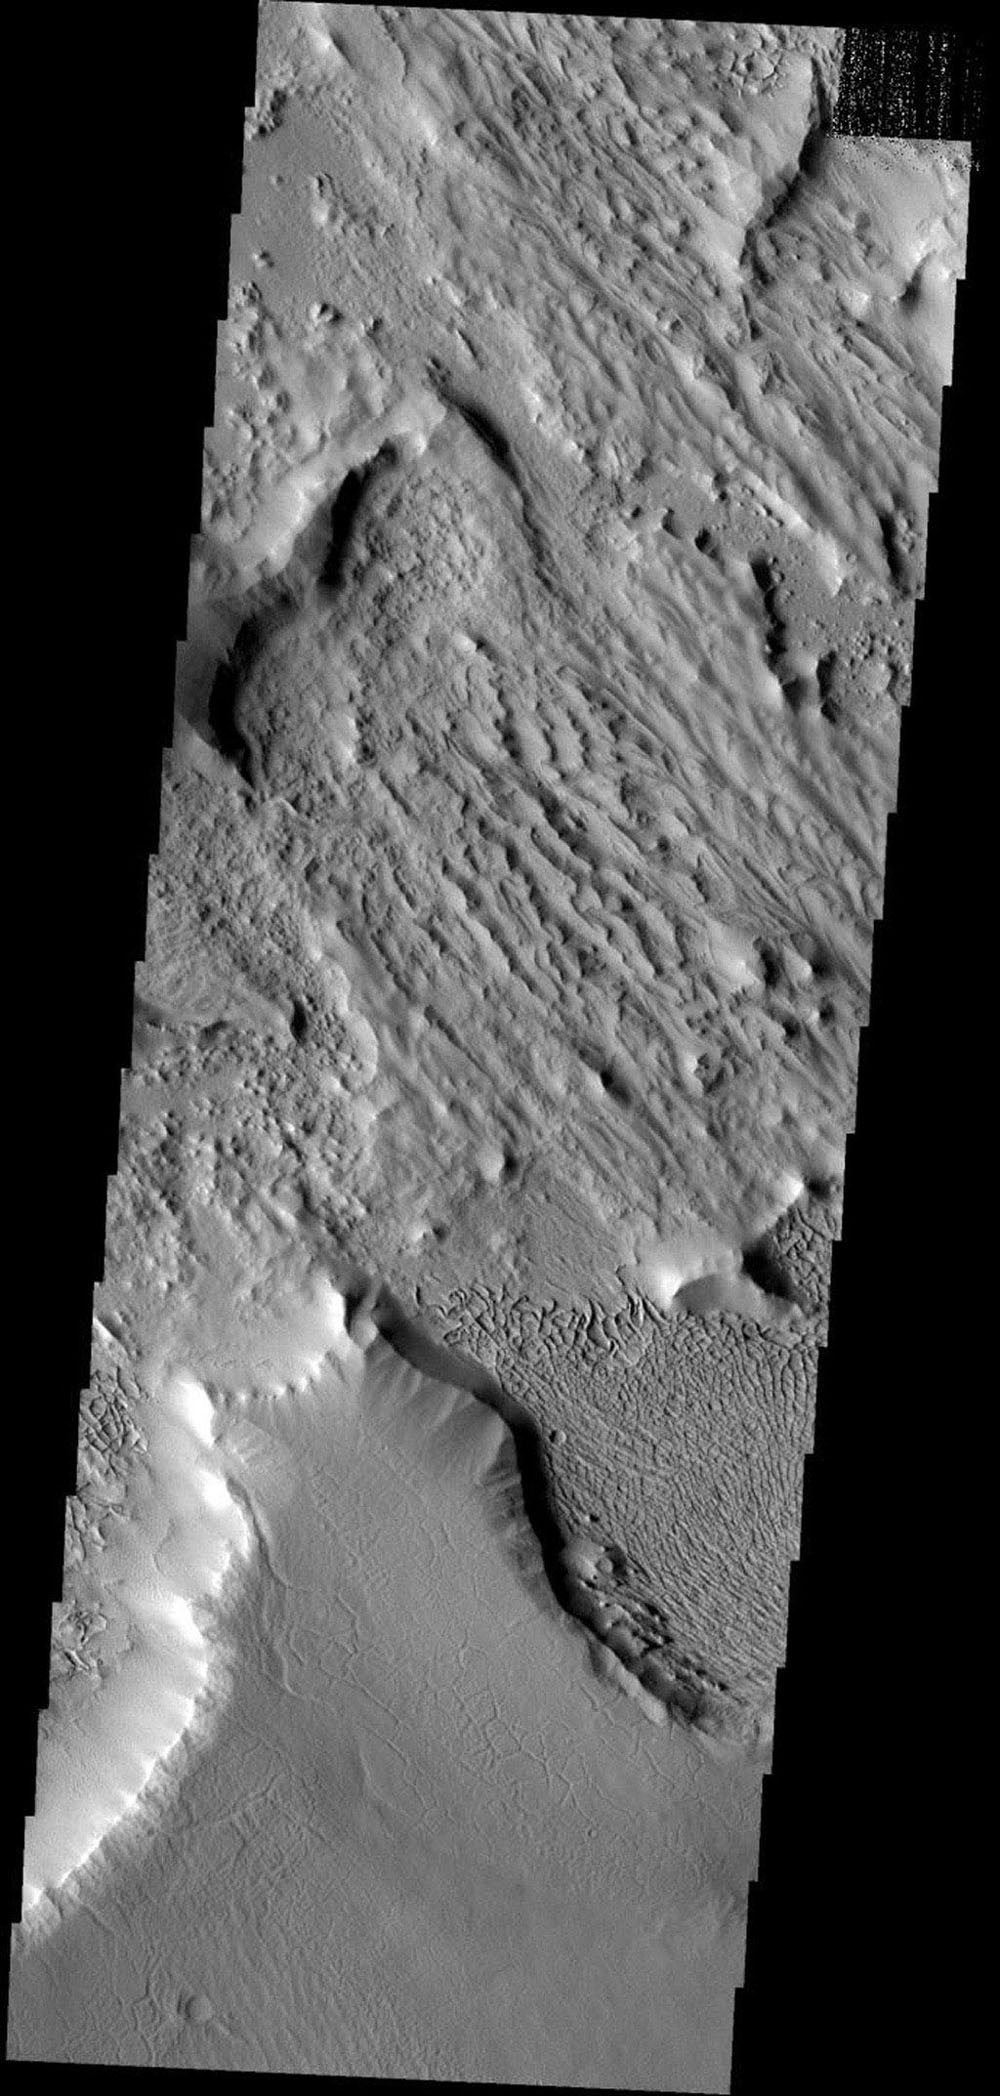 This image has a cracked plateau of material next to a low region of interconnected small ridges. This region is located at the northwestern end of Gordii Dorsum on Mars as seen by NASA's 2001 Mars Odyssey spacecraft.